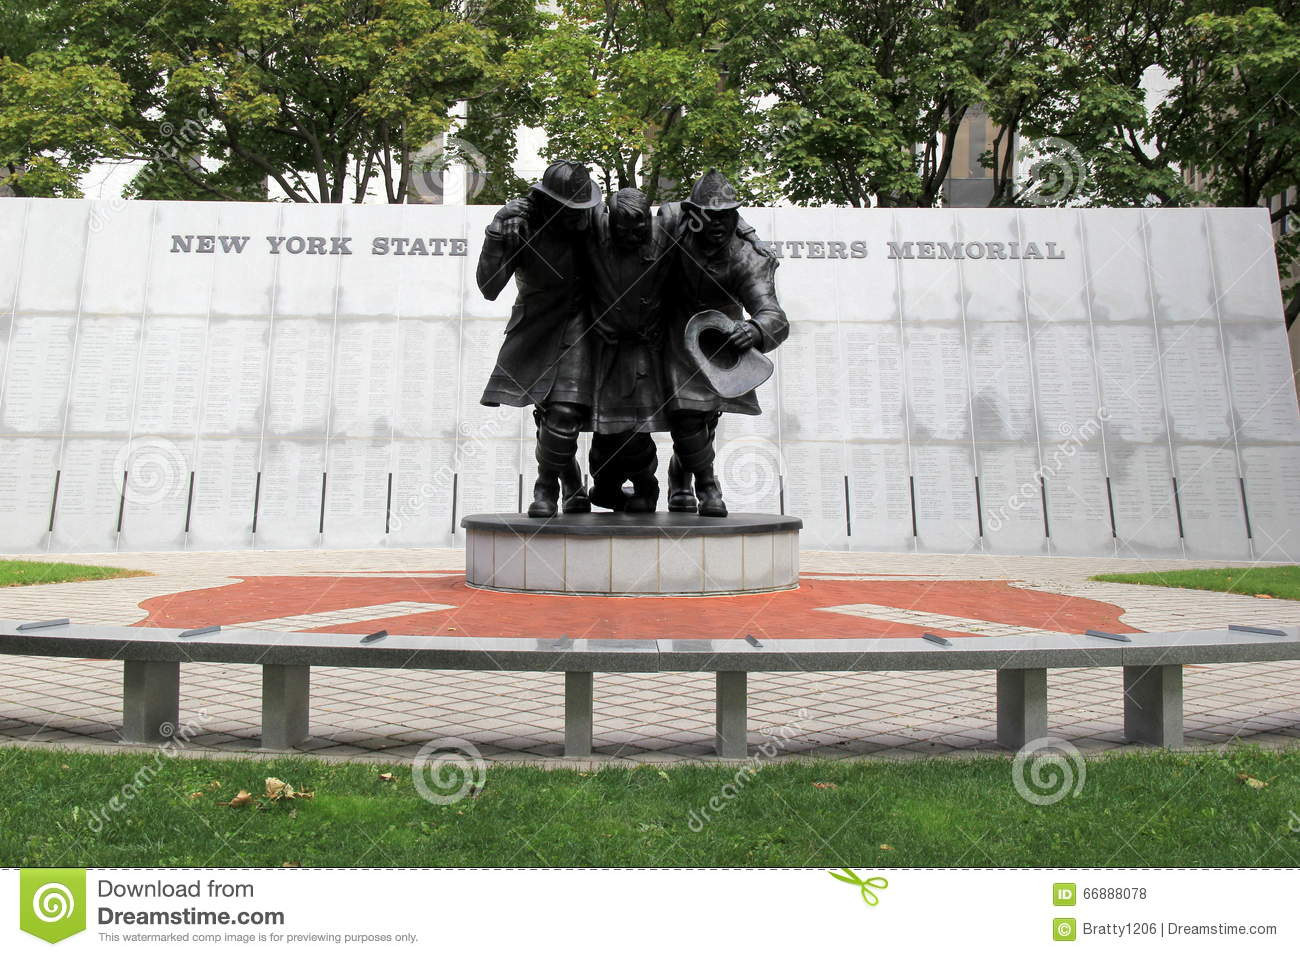 Emotional sculpture of firemen who helped during 9-11 attacks,Empire State Plaza,Albany,New York,2016